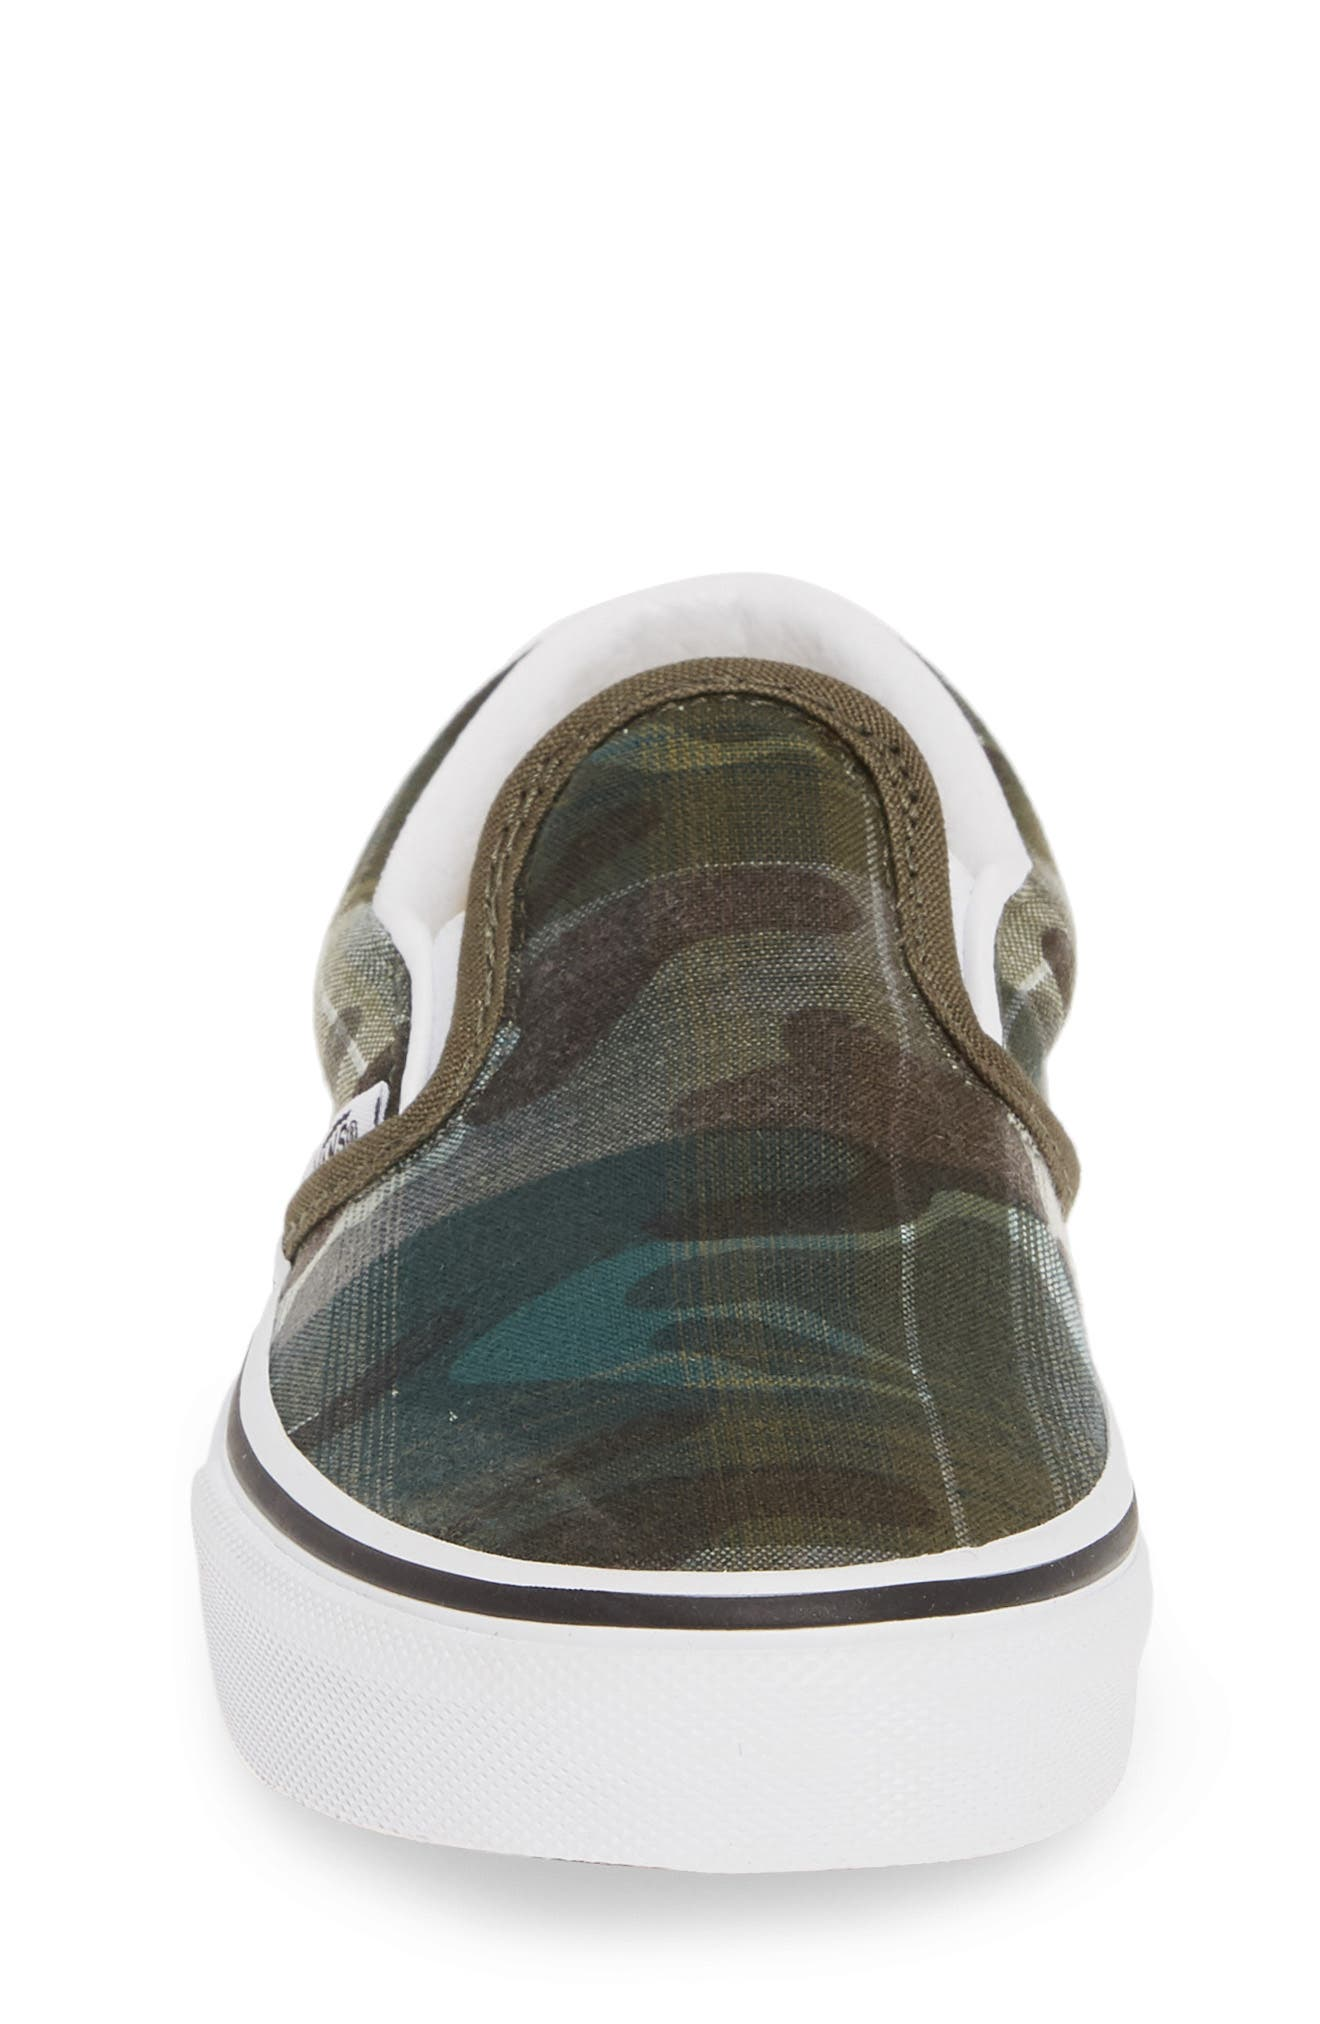 VANS, 'Classic' Slip-On, Alternate thumbnail 4, color, PLAID CAMO GRAPE LEAF/ WHITE